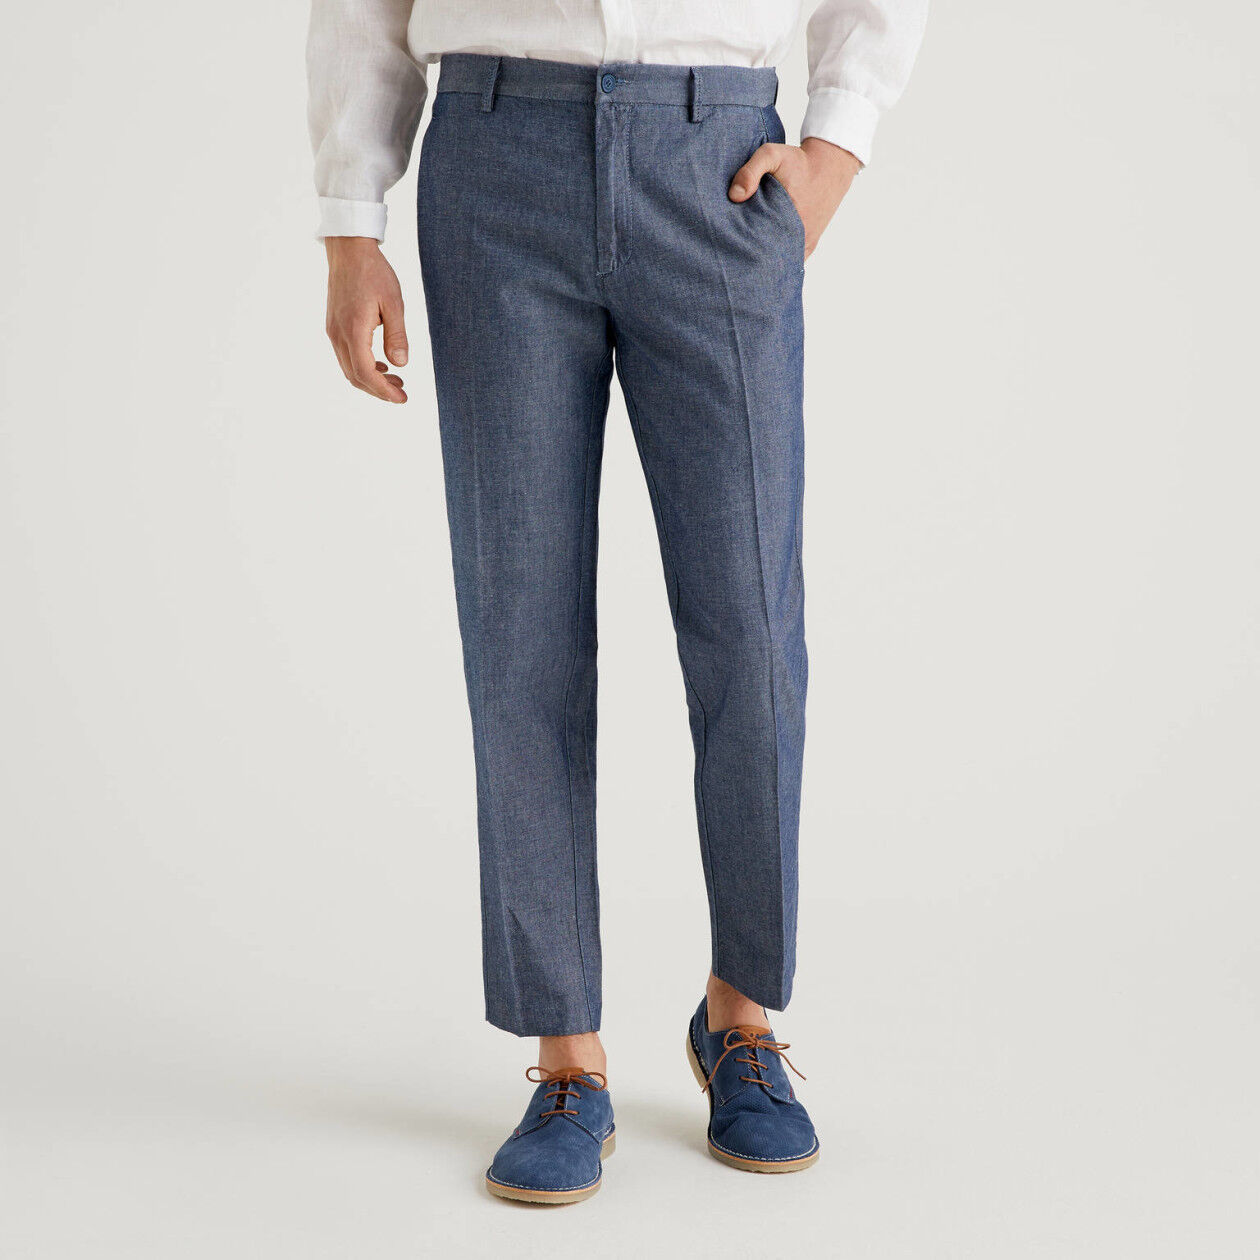 Denim trousers in linen blend cotton